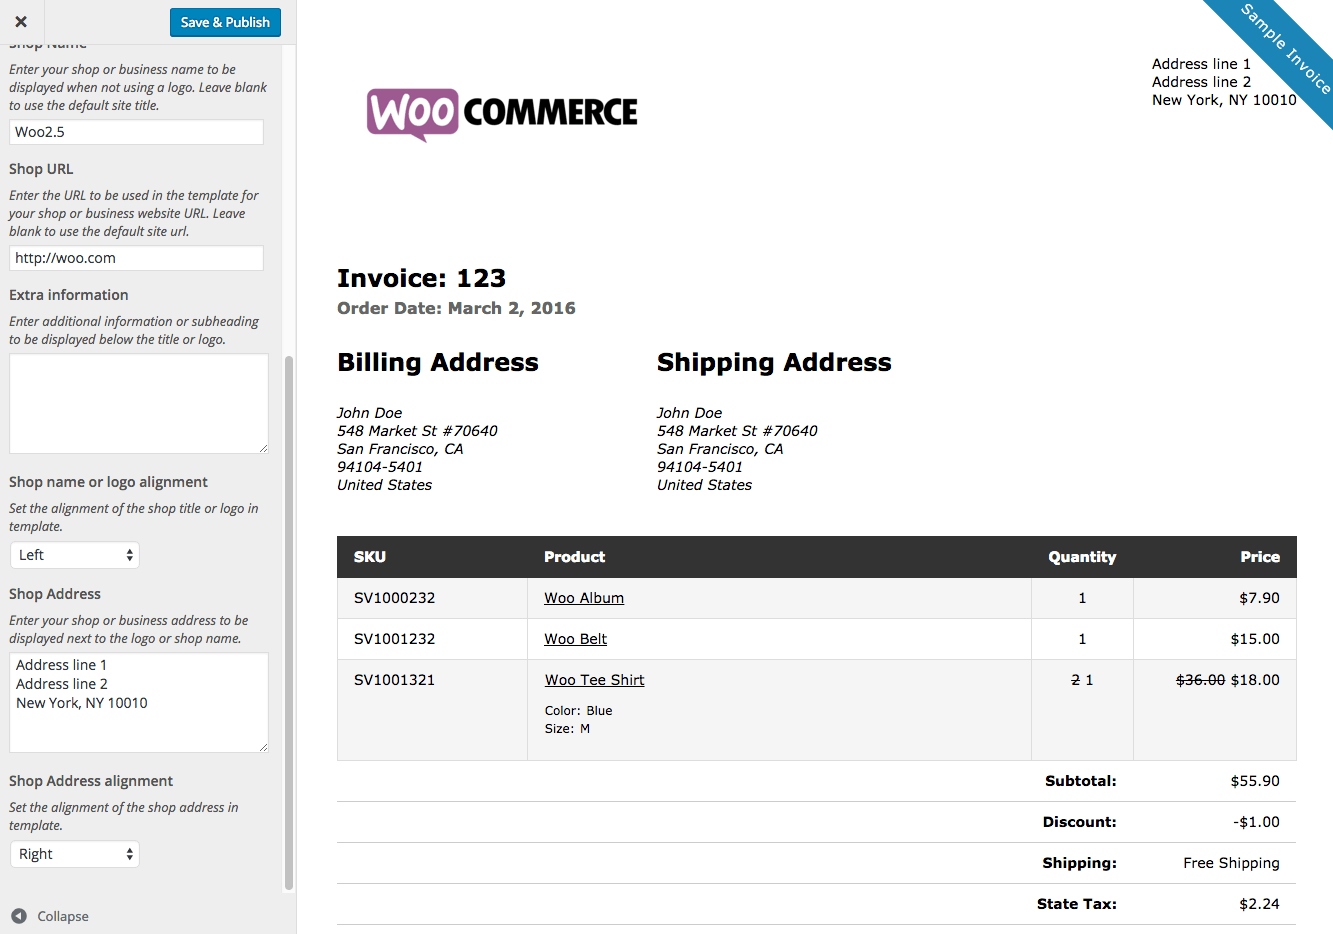 Darkfaderus  Pleasing Woocommerce Print Invoices Amp Packing Lists  Woocommerce Docs With Inspiring Woocommerce Print Invoices  Packing Lists Customizer With Amusing Party City Return Policy No Receipt Also Neiman Marcus Return Policy No Receipt In Addition Payment Received Receipt Letter And Rent Deposit Receipt As Well As Snap And Store Receipts Additionally Old Navy Receipt From Docswoocommercecom With Darkfaderus  Inspiring Woocommerce Print Invoices Amp Packing Lists  Woocommerce Docs With Amusing Woocommerce Print Invoices  Packing Lists Customizer And Pleasing Party City Return Policy No Receipt Also Neiman Marcus Return Policy No Receipt In Addition Payment Received Receipt Letter From Docswoocommercecom